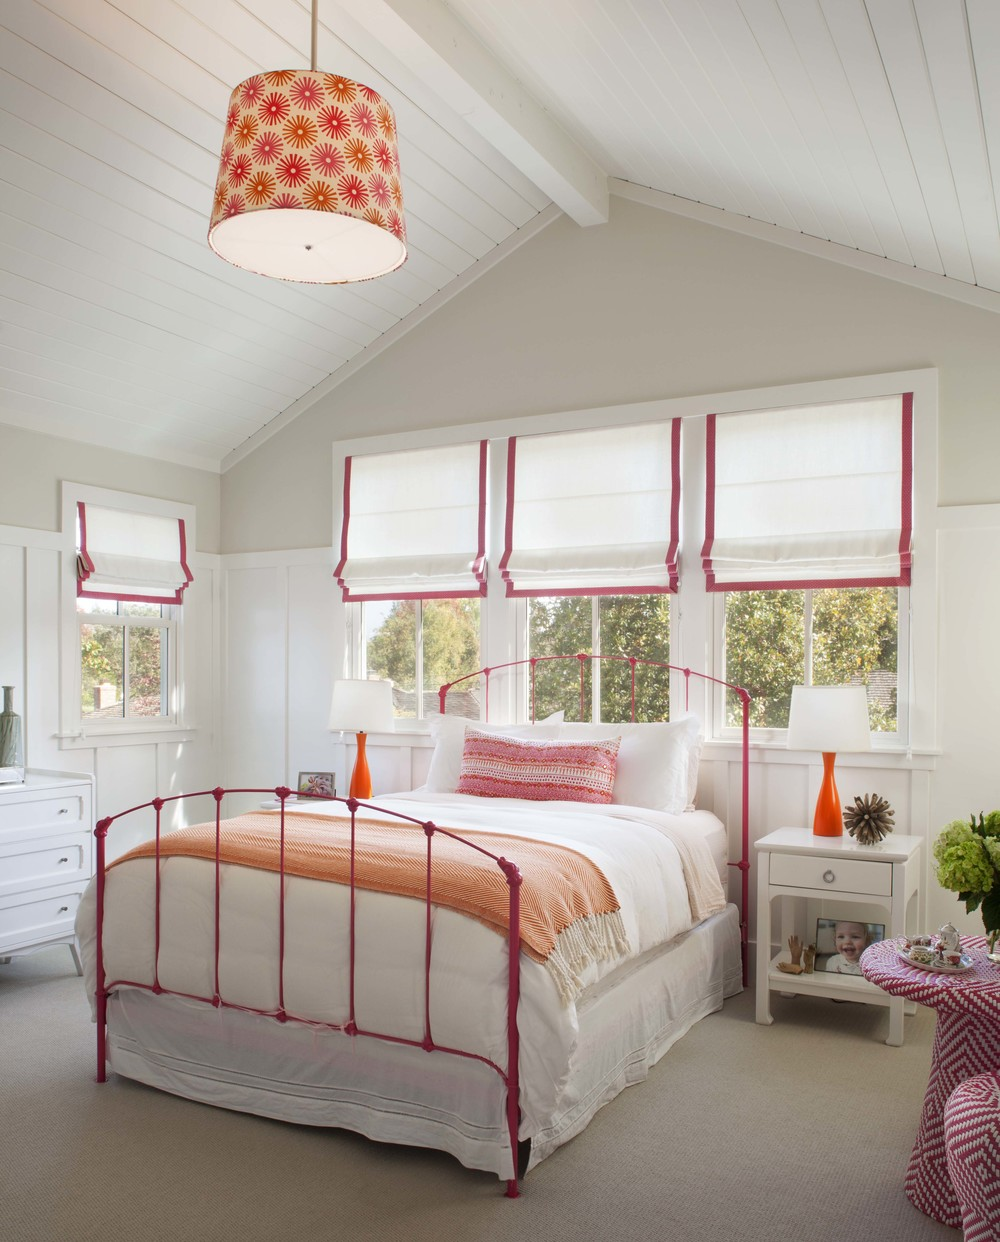 Modern Farmhouse: Girl's room